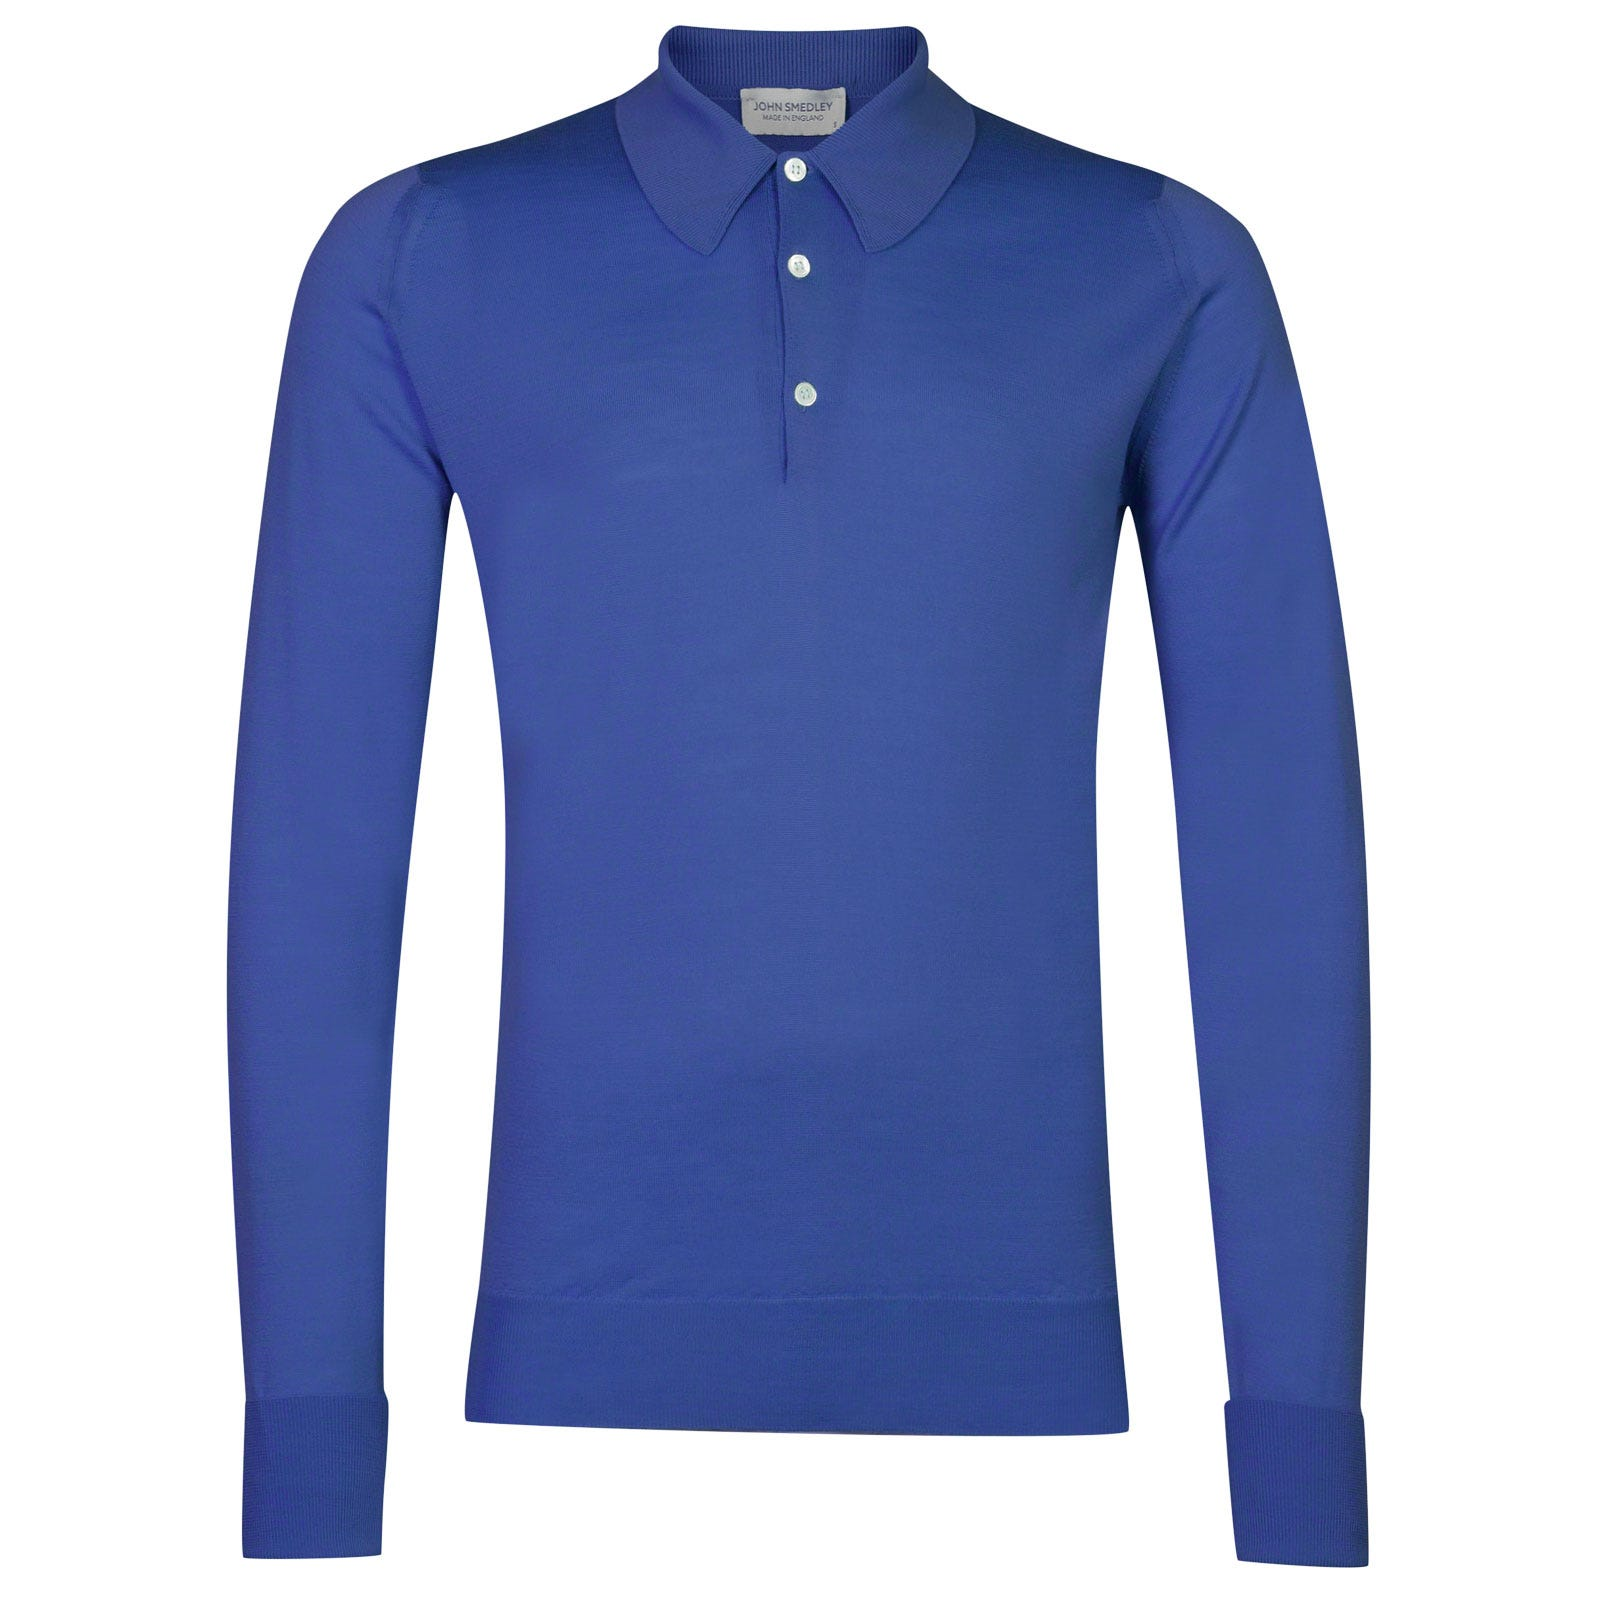 John Smedley dorset Merino Wool Shirt in Chambray Blue-M